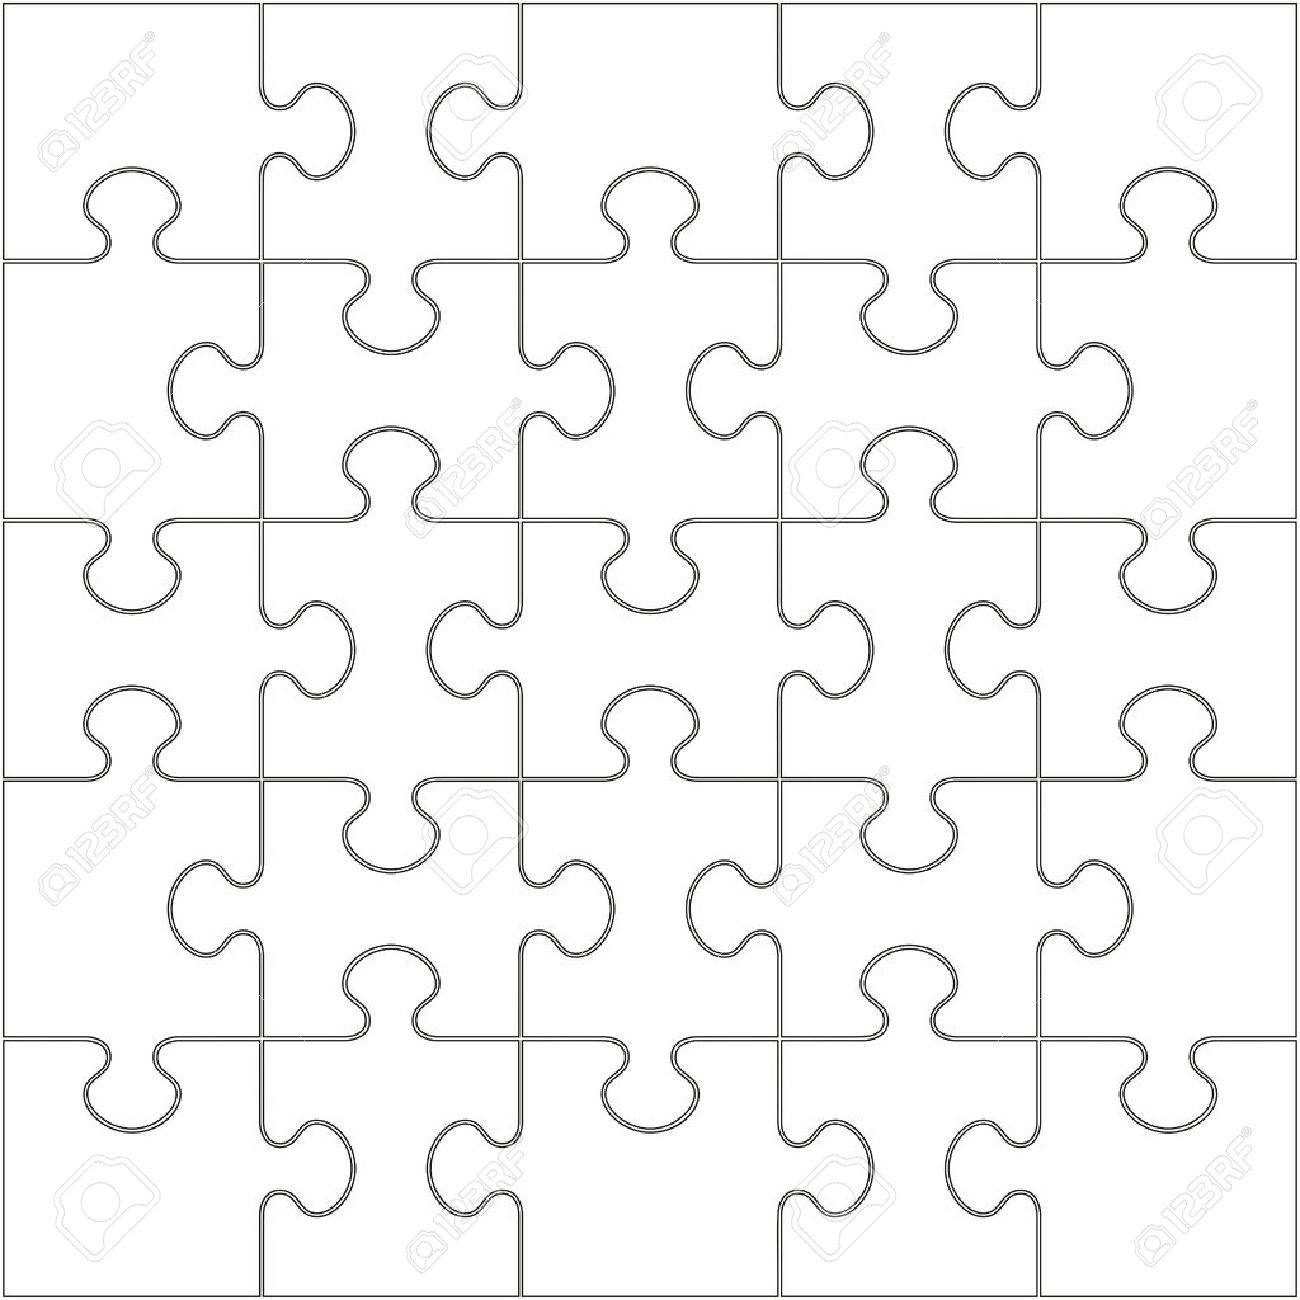 1300x1300 25 White Puzzle Pieces Arranged In A Square